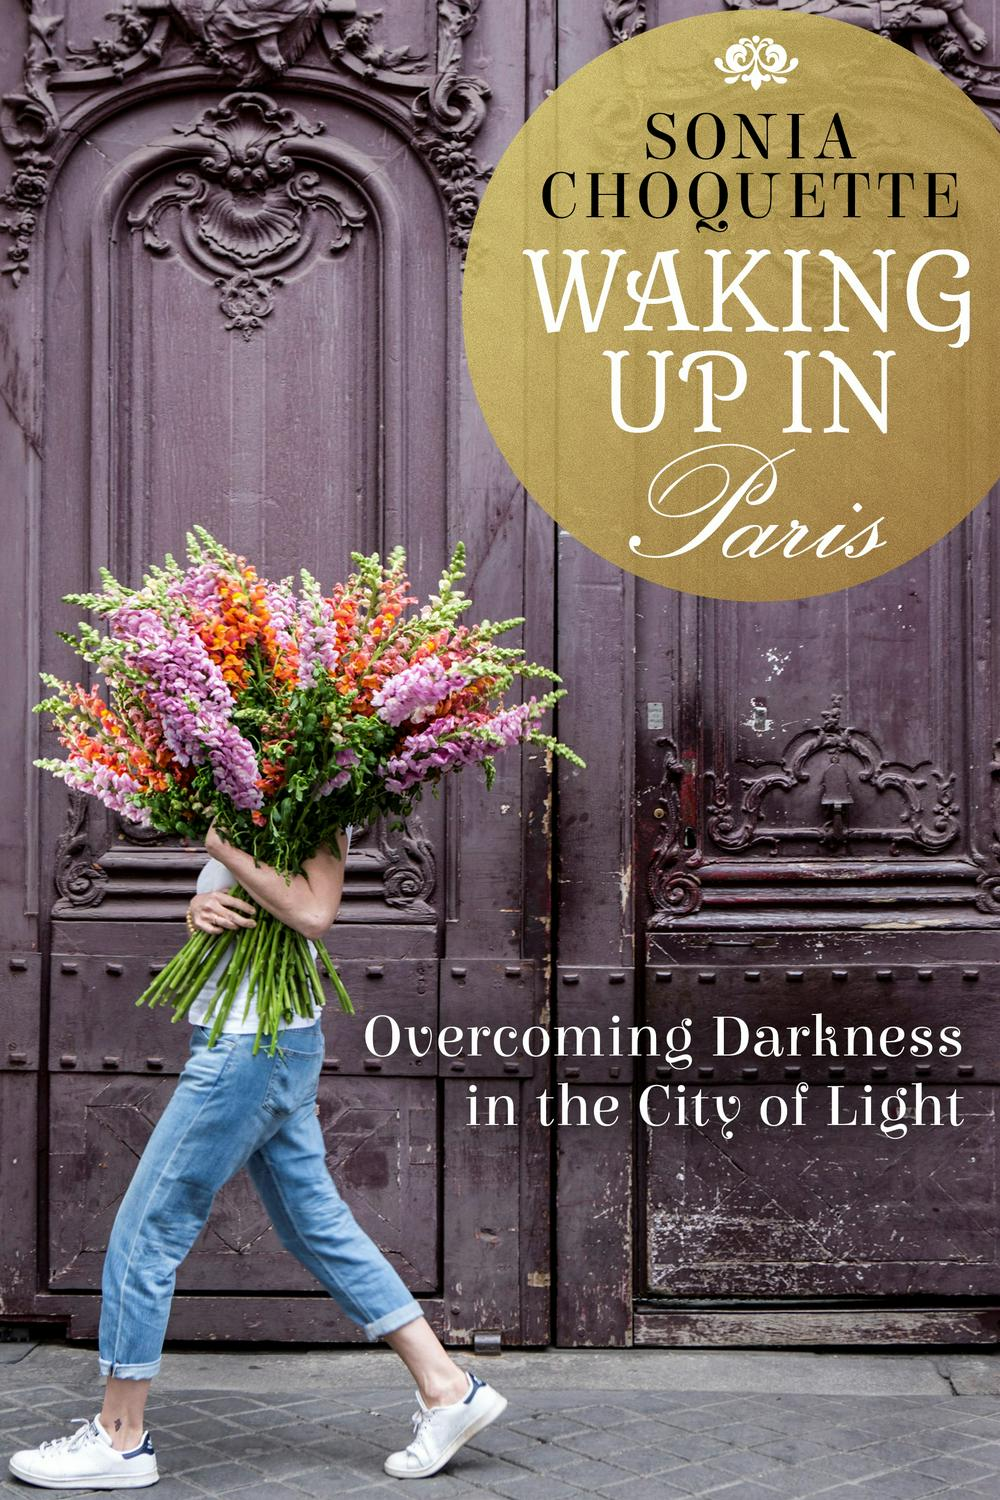 Waking Up In ParisOvercoming Darkness In The City Of Light